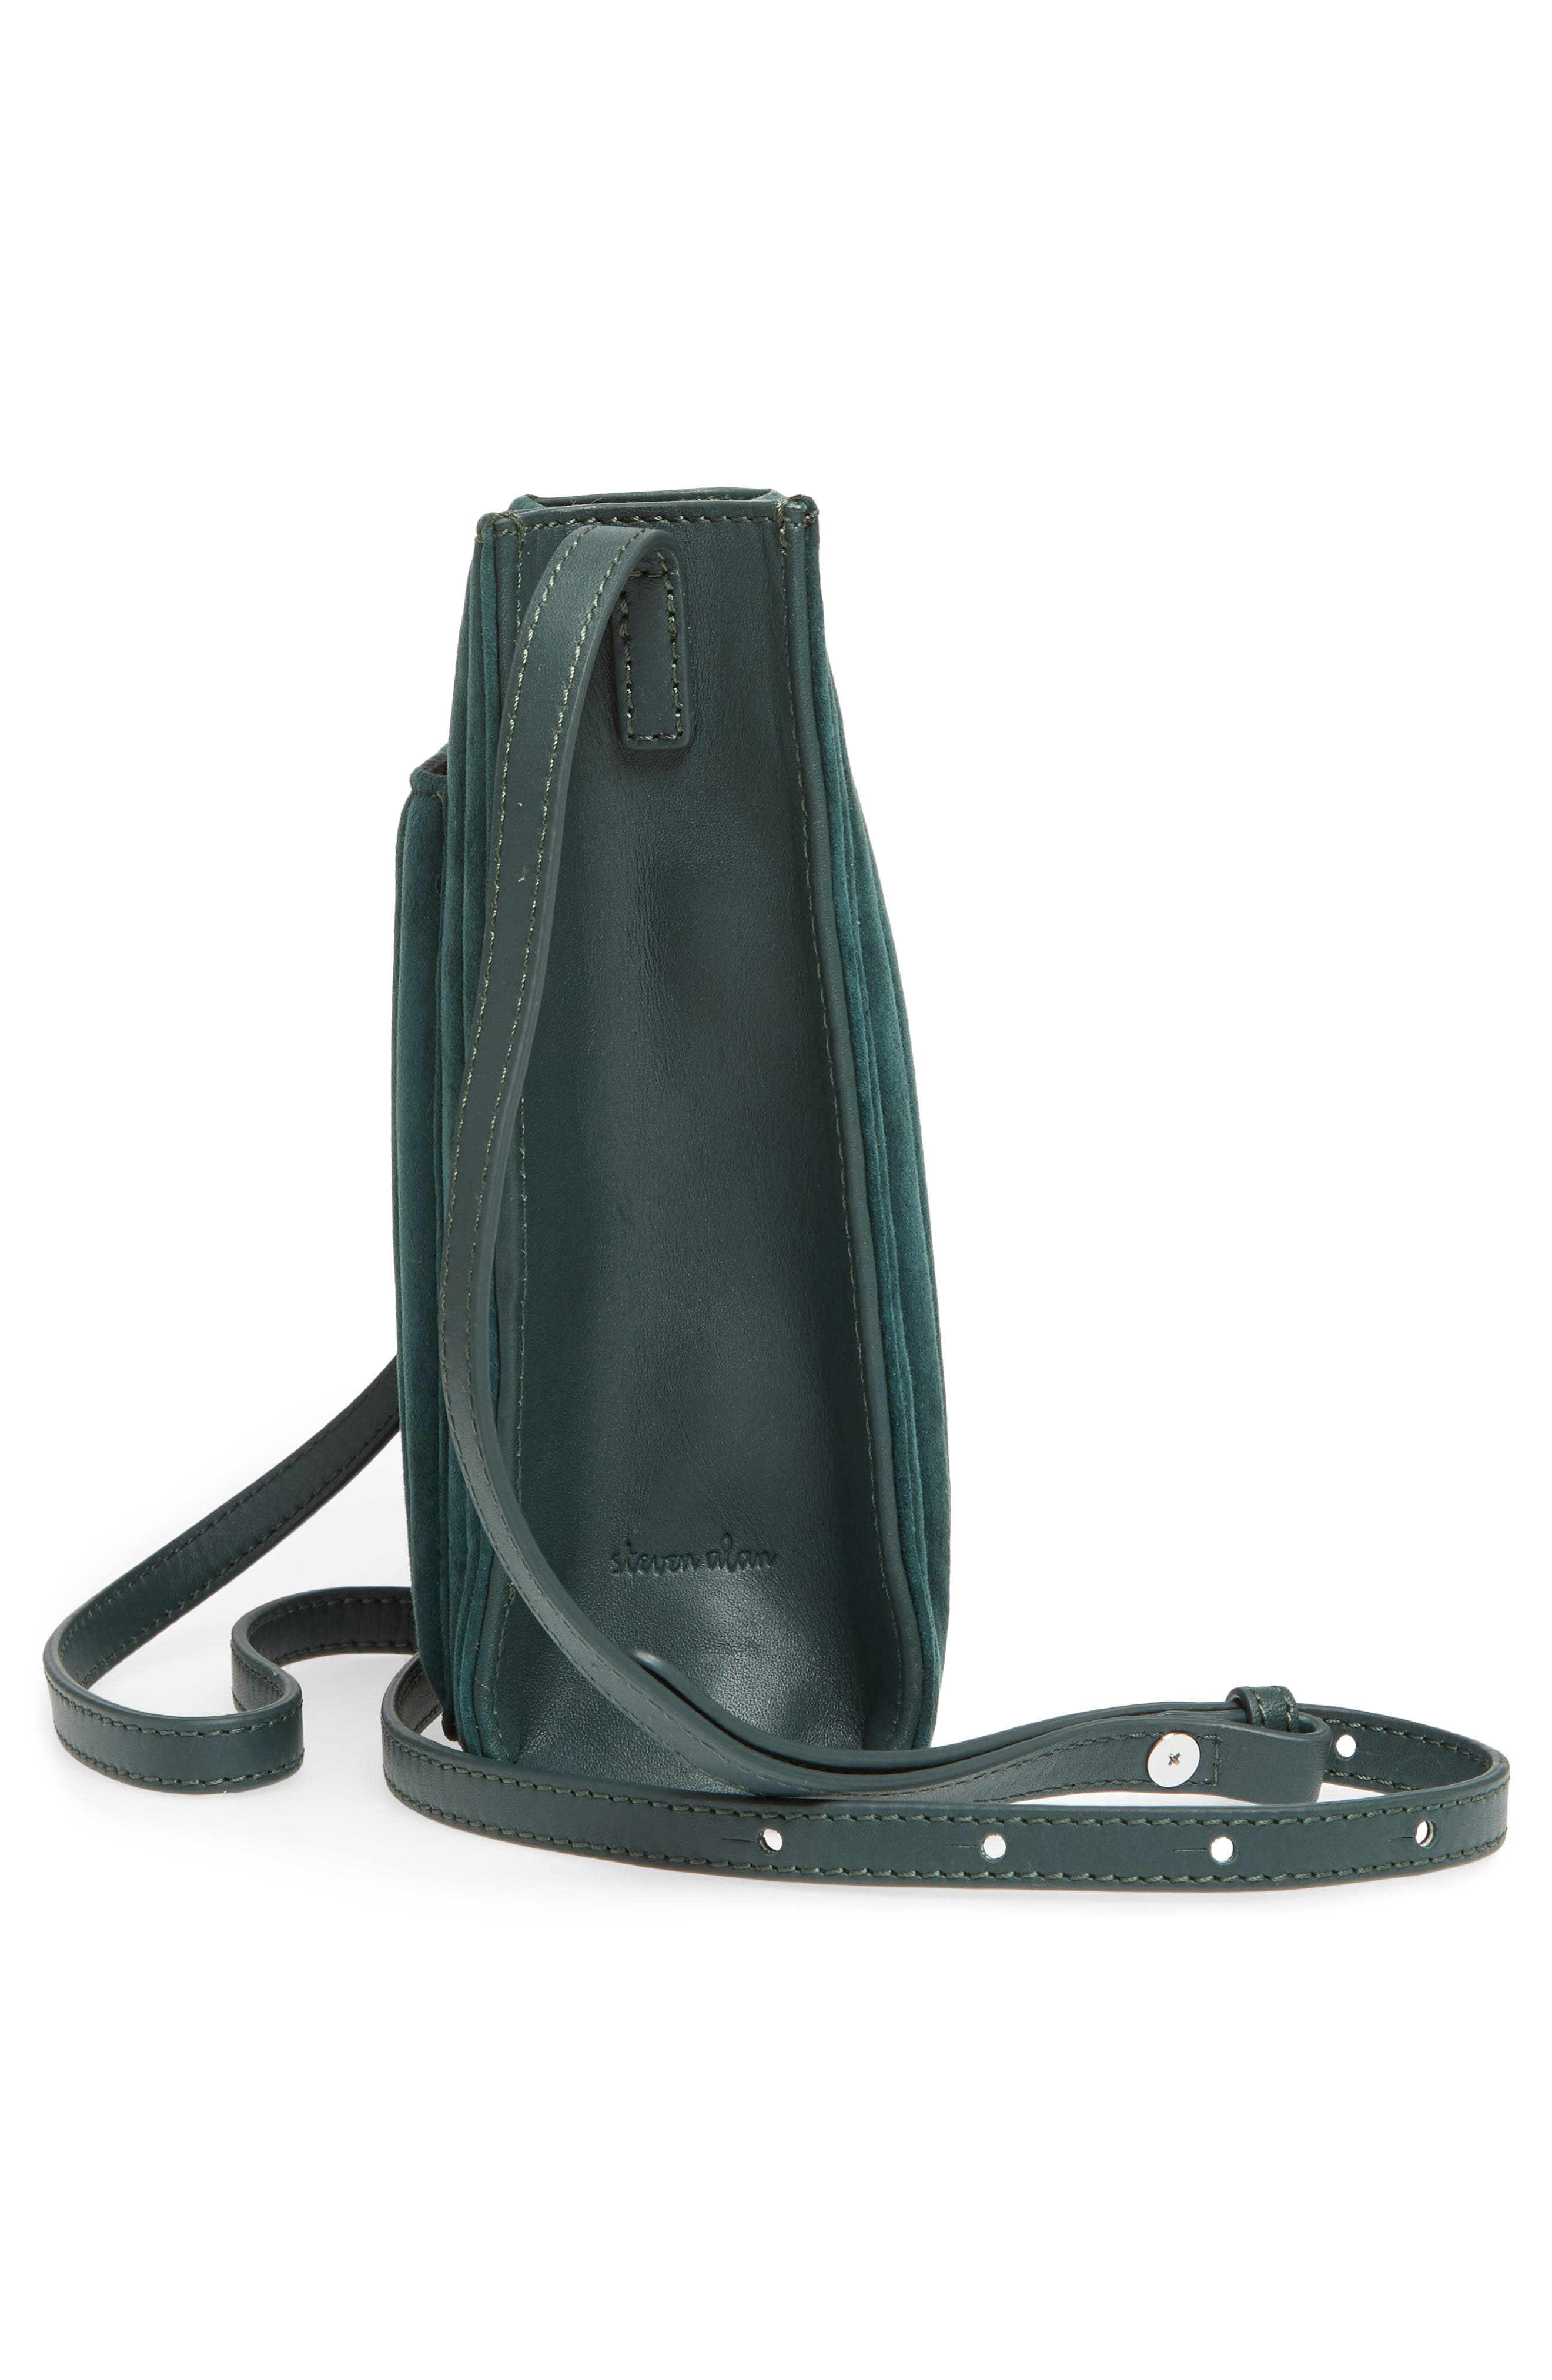 Camden Leather Crossbody Bag,                             Alternate thumbnail 5, color,                             Ink Green Quilted